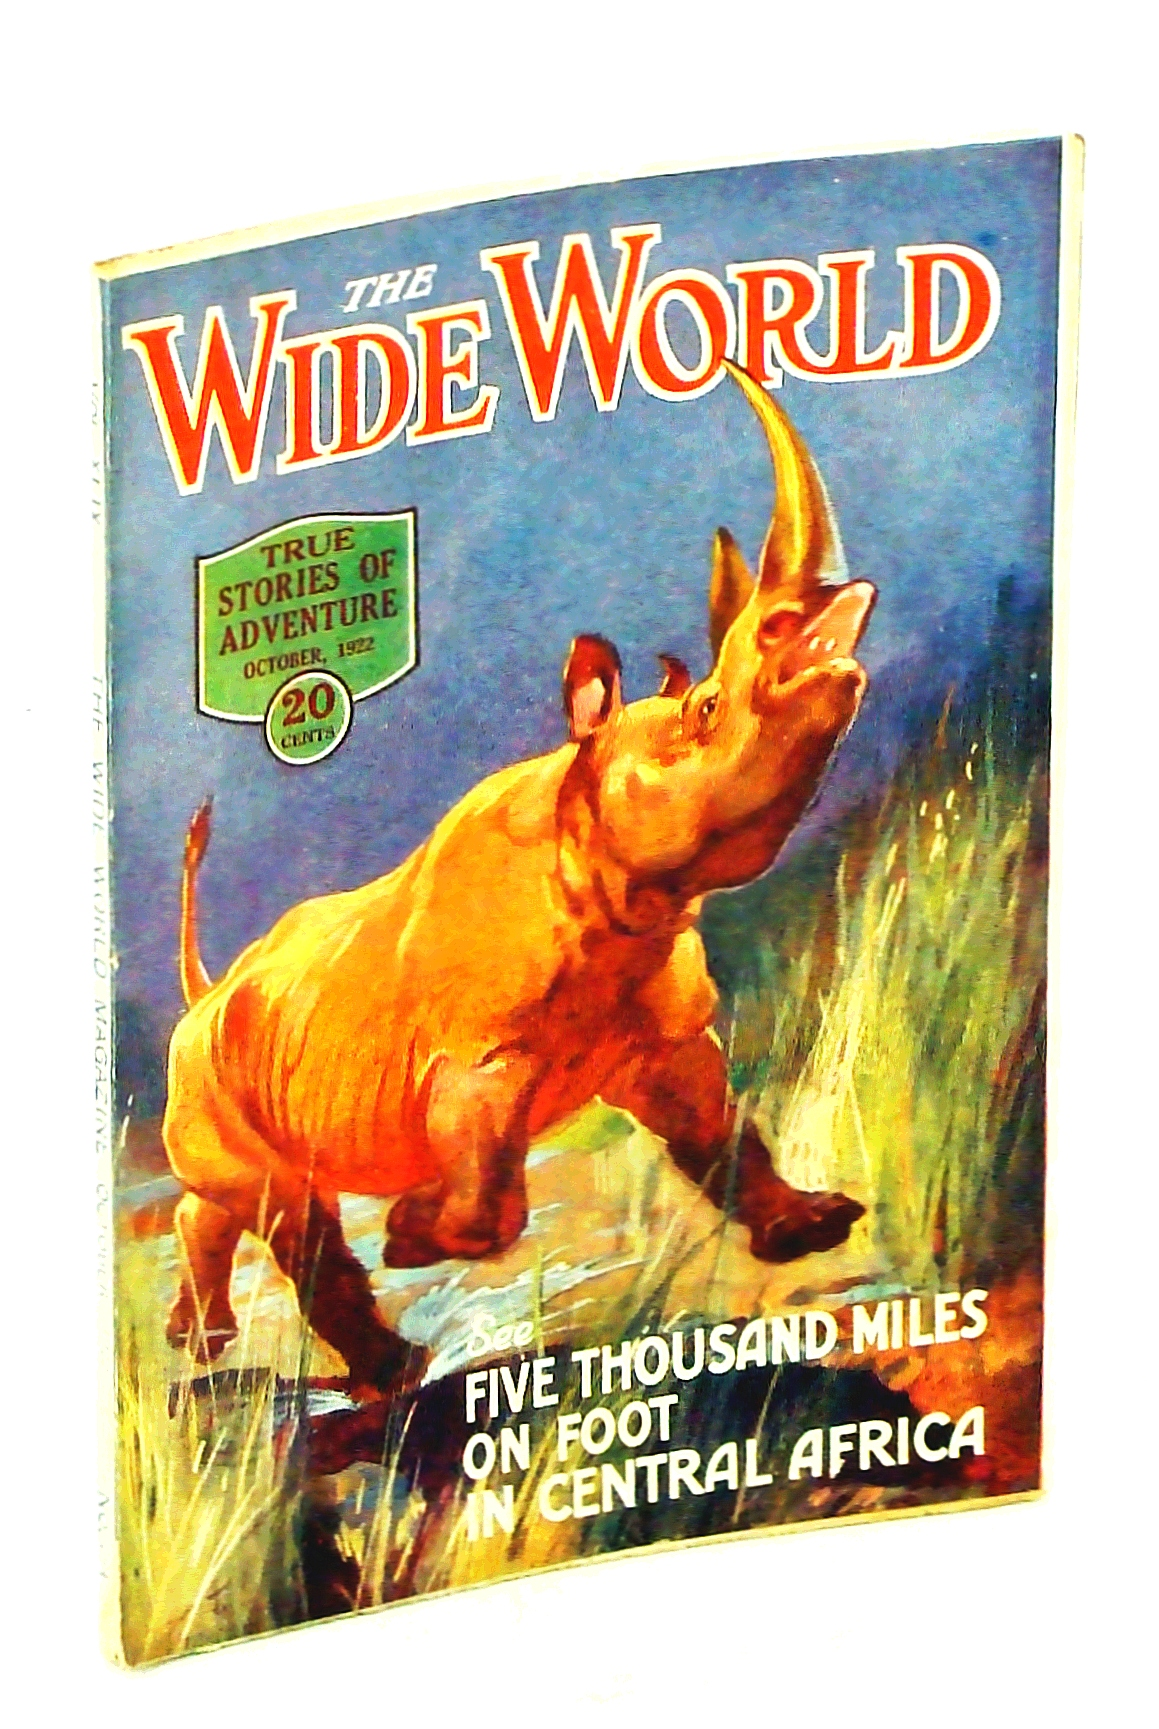 Image for The Wide World Magazine - True Stories of Adventure, October [Oct.] 1922, Vol. 49, No. 294: Five Thousand Miles on Foot in Central Africa